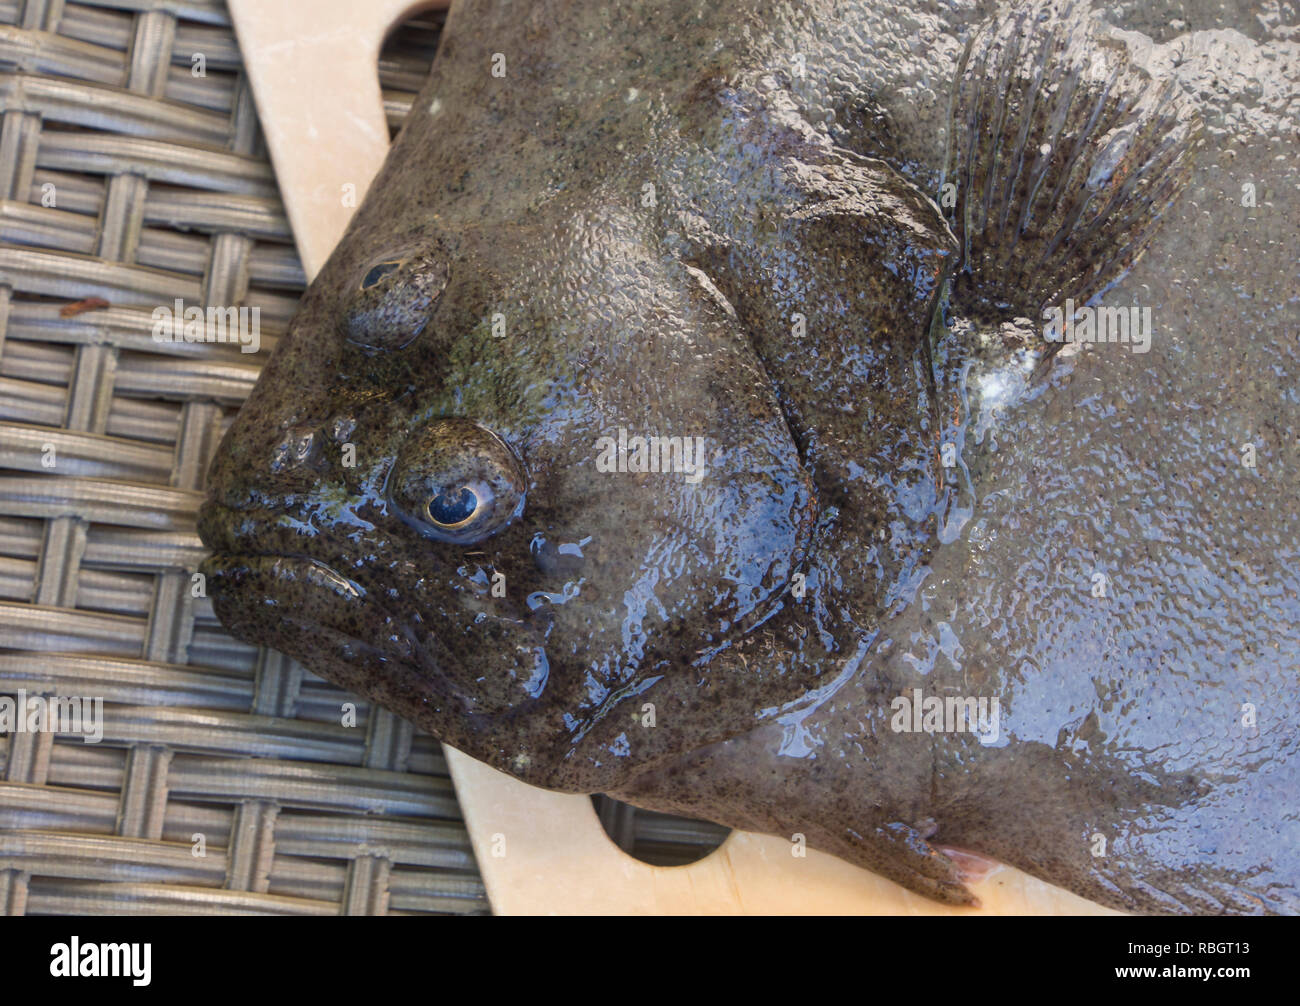 Brill, Scophthalmus rhombus, a flatfish on a cutting board ready for cooking, fished in the Oslo fjord Norway - Stock Image